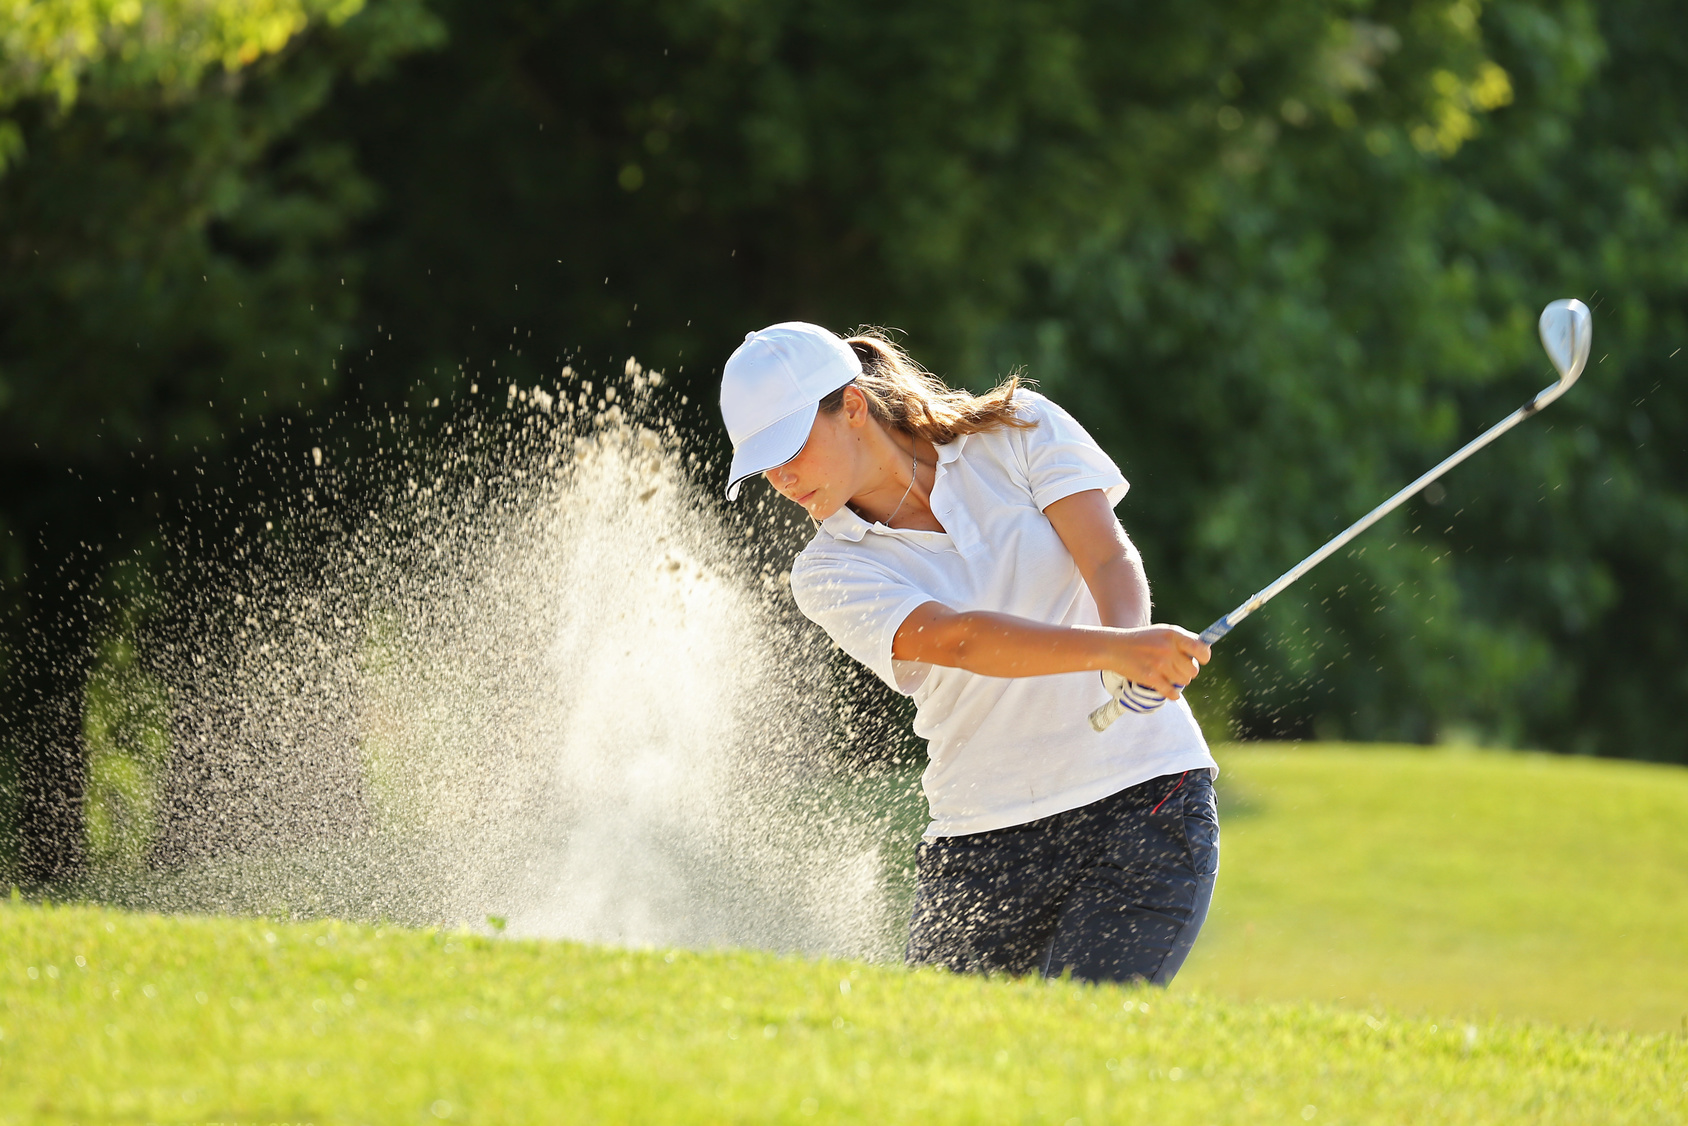 R&A launches drive to  promote women's golf